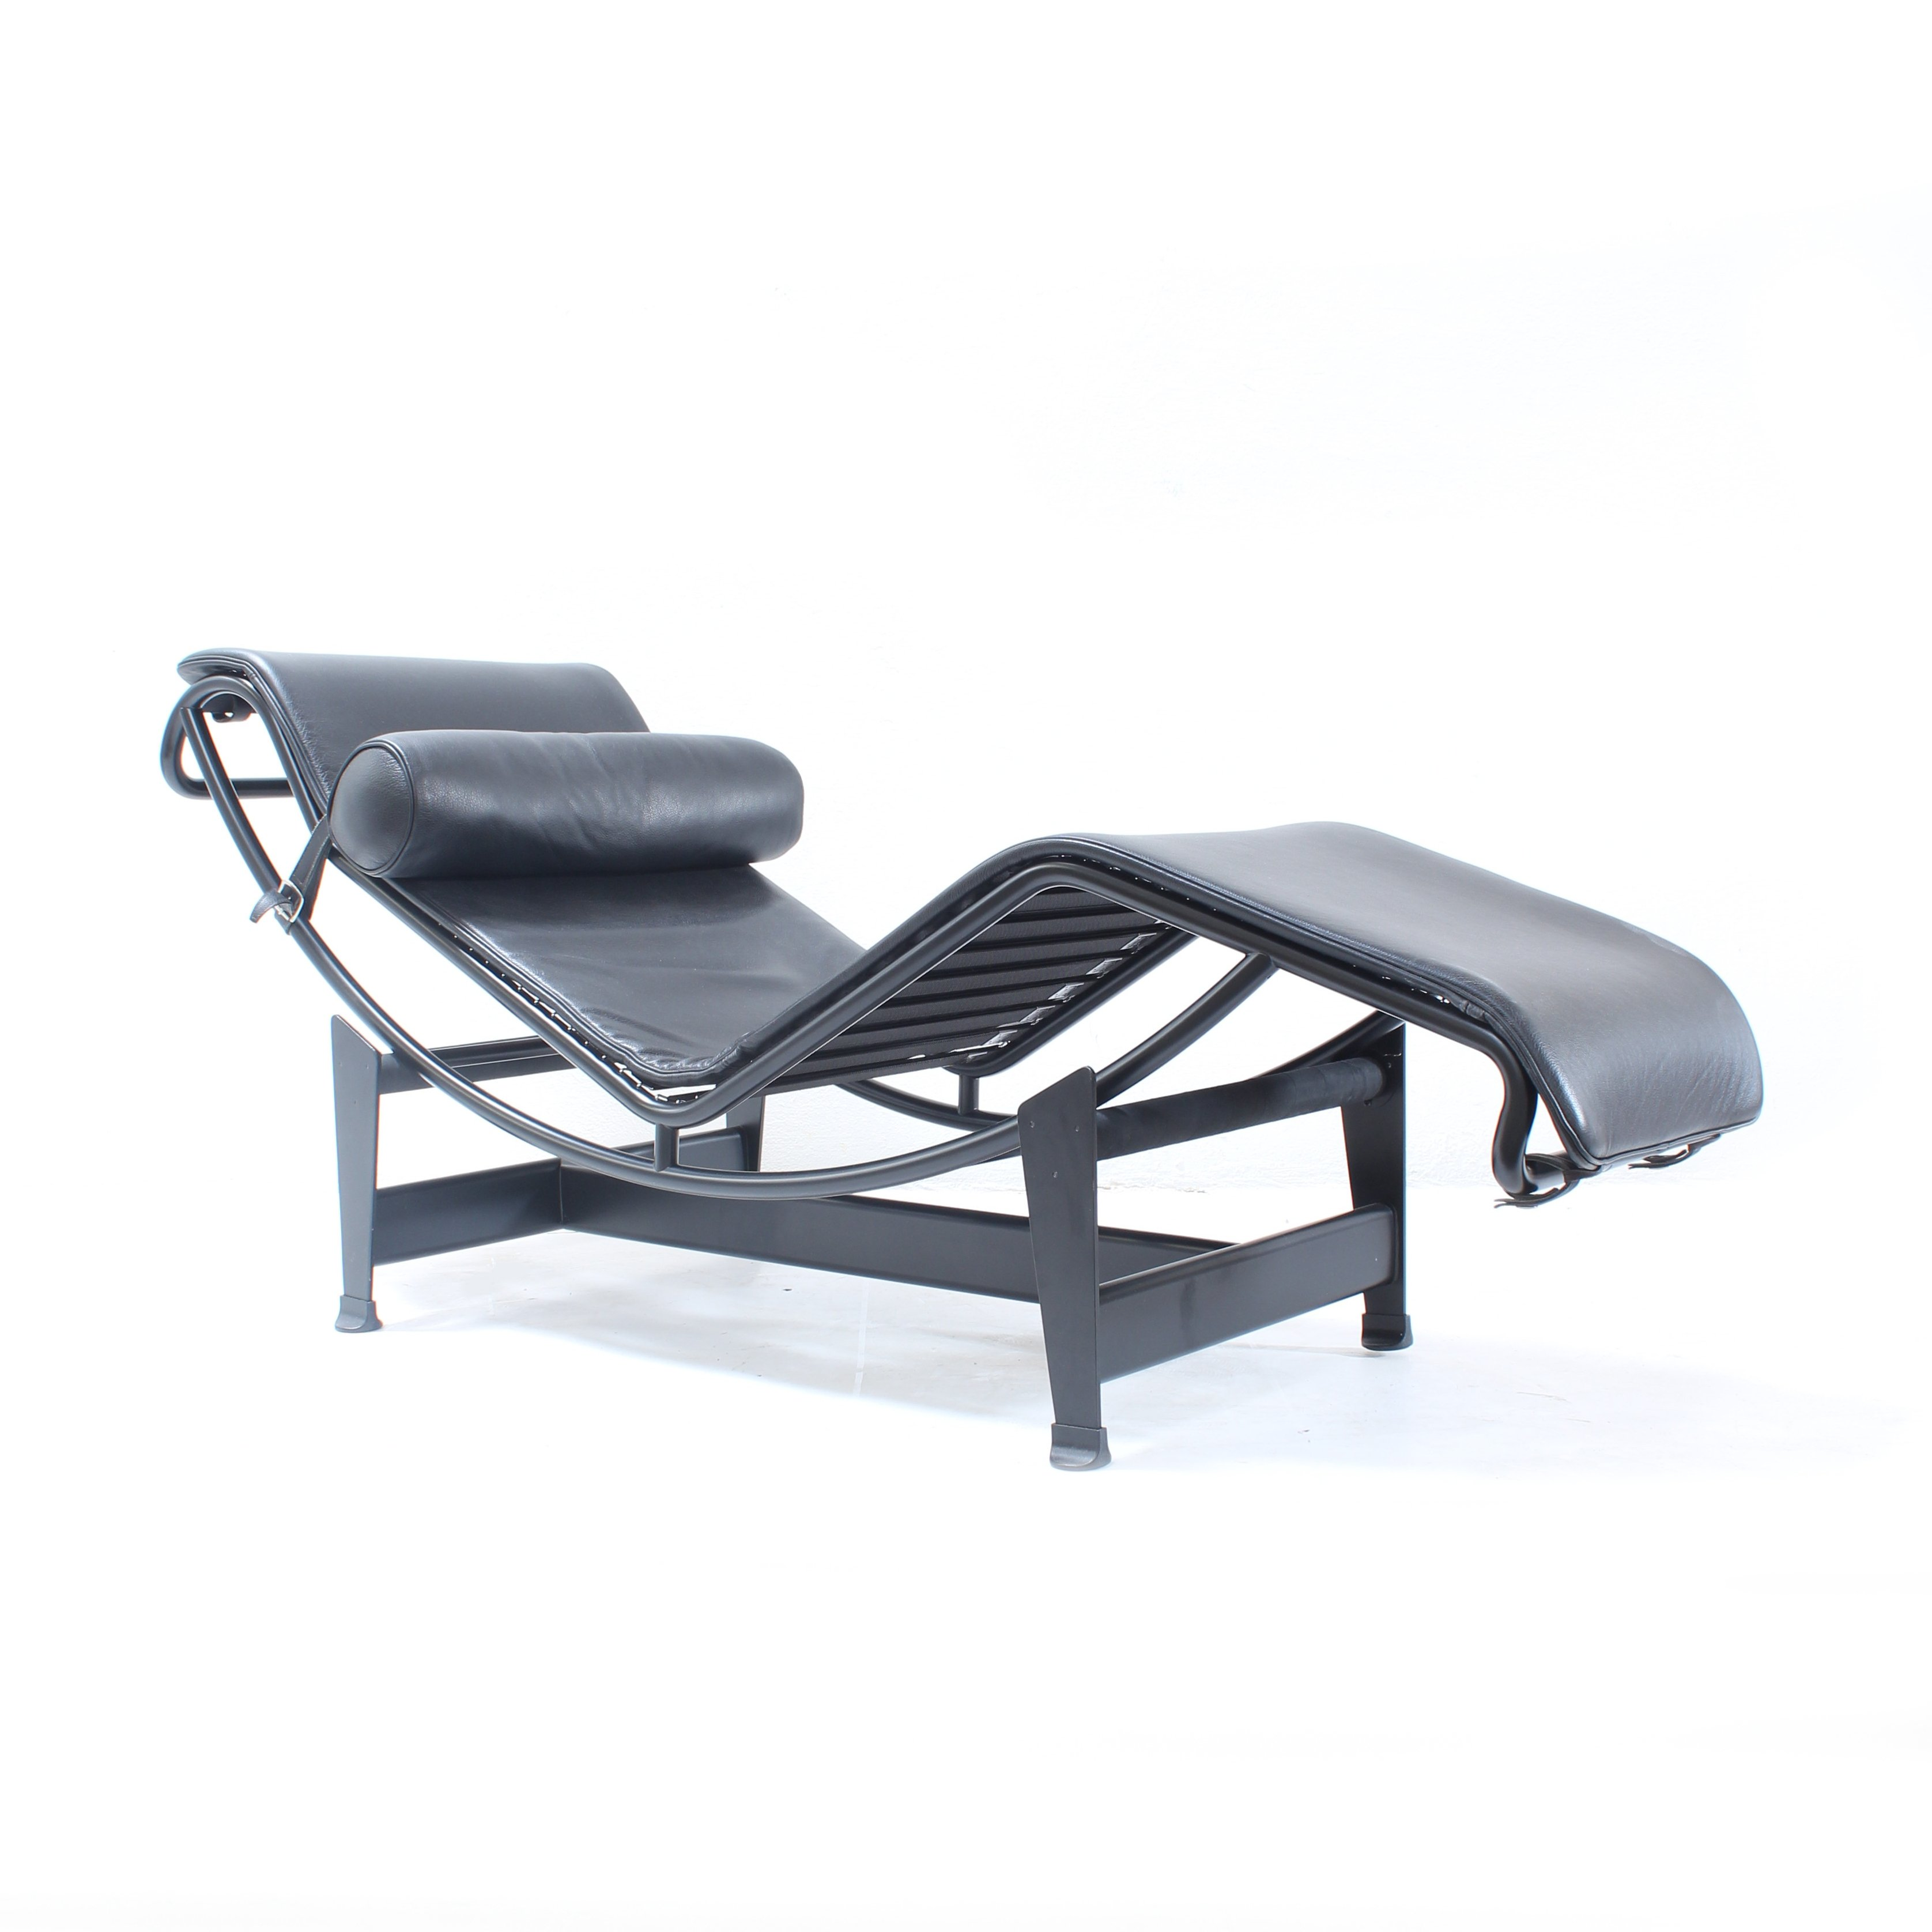 Lc4 chaise longue rare full black edition lounge chair for Chaise le corbusier